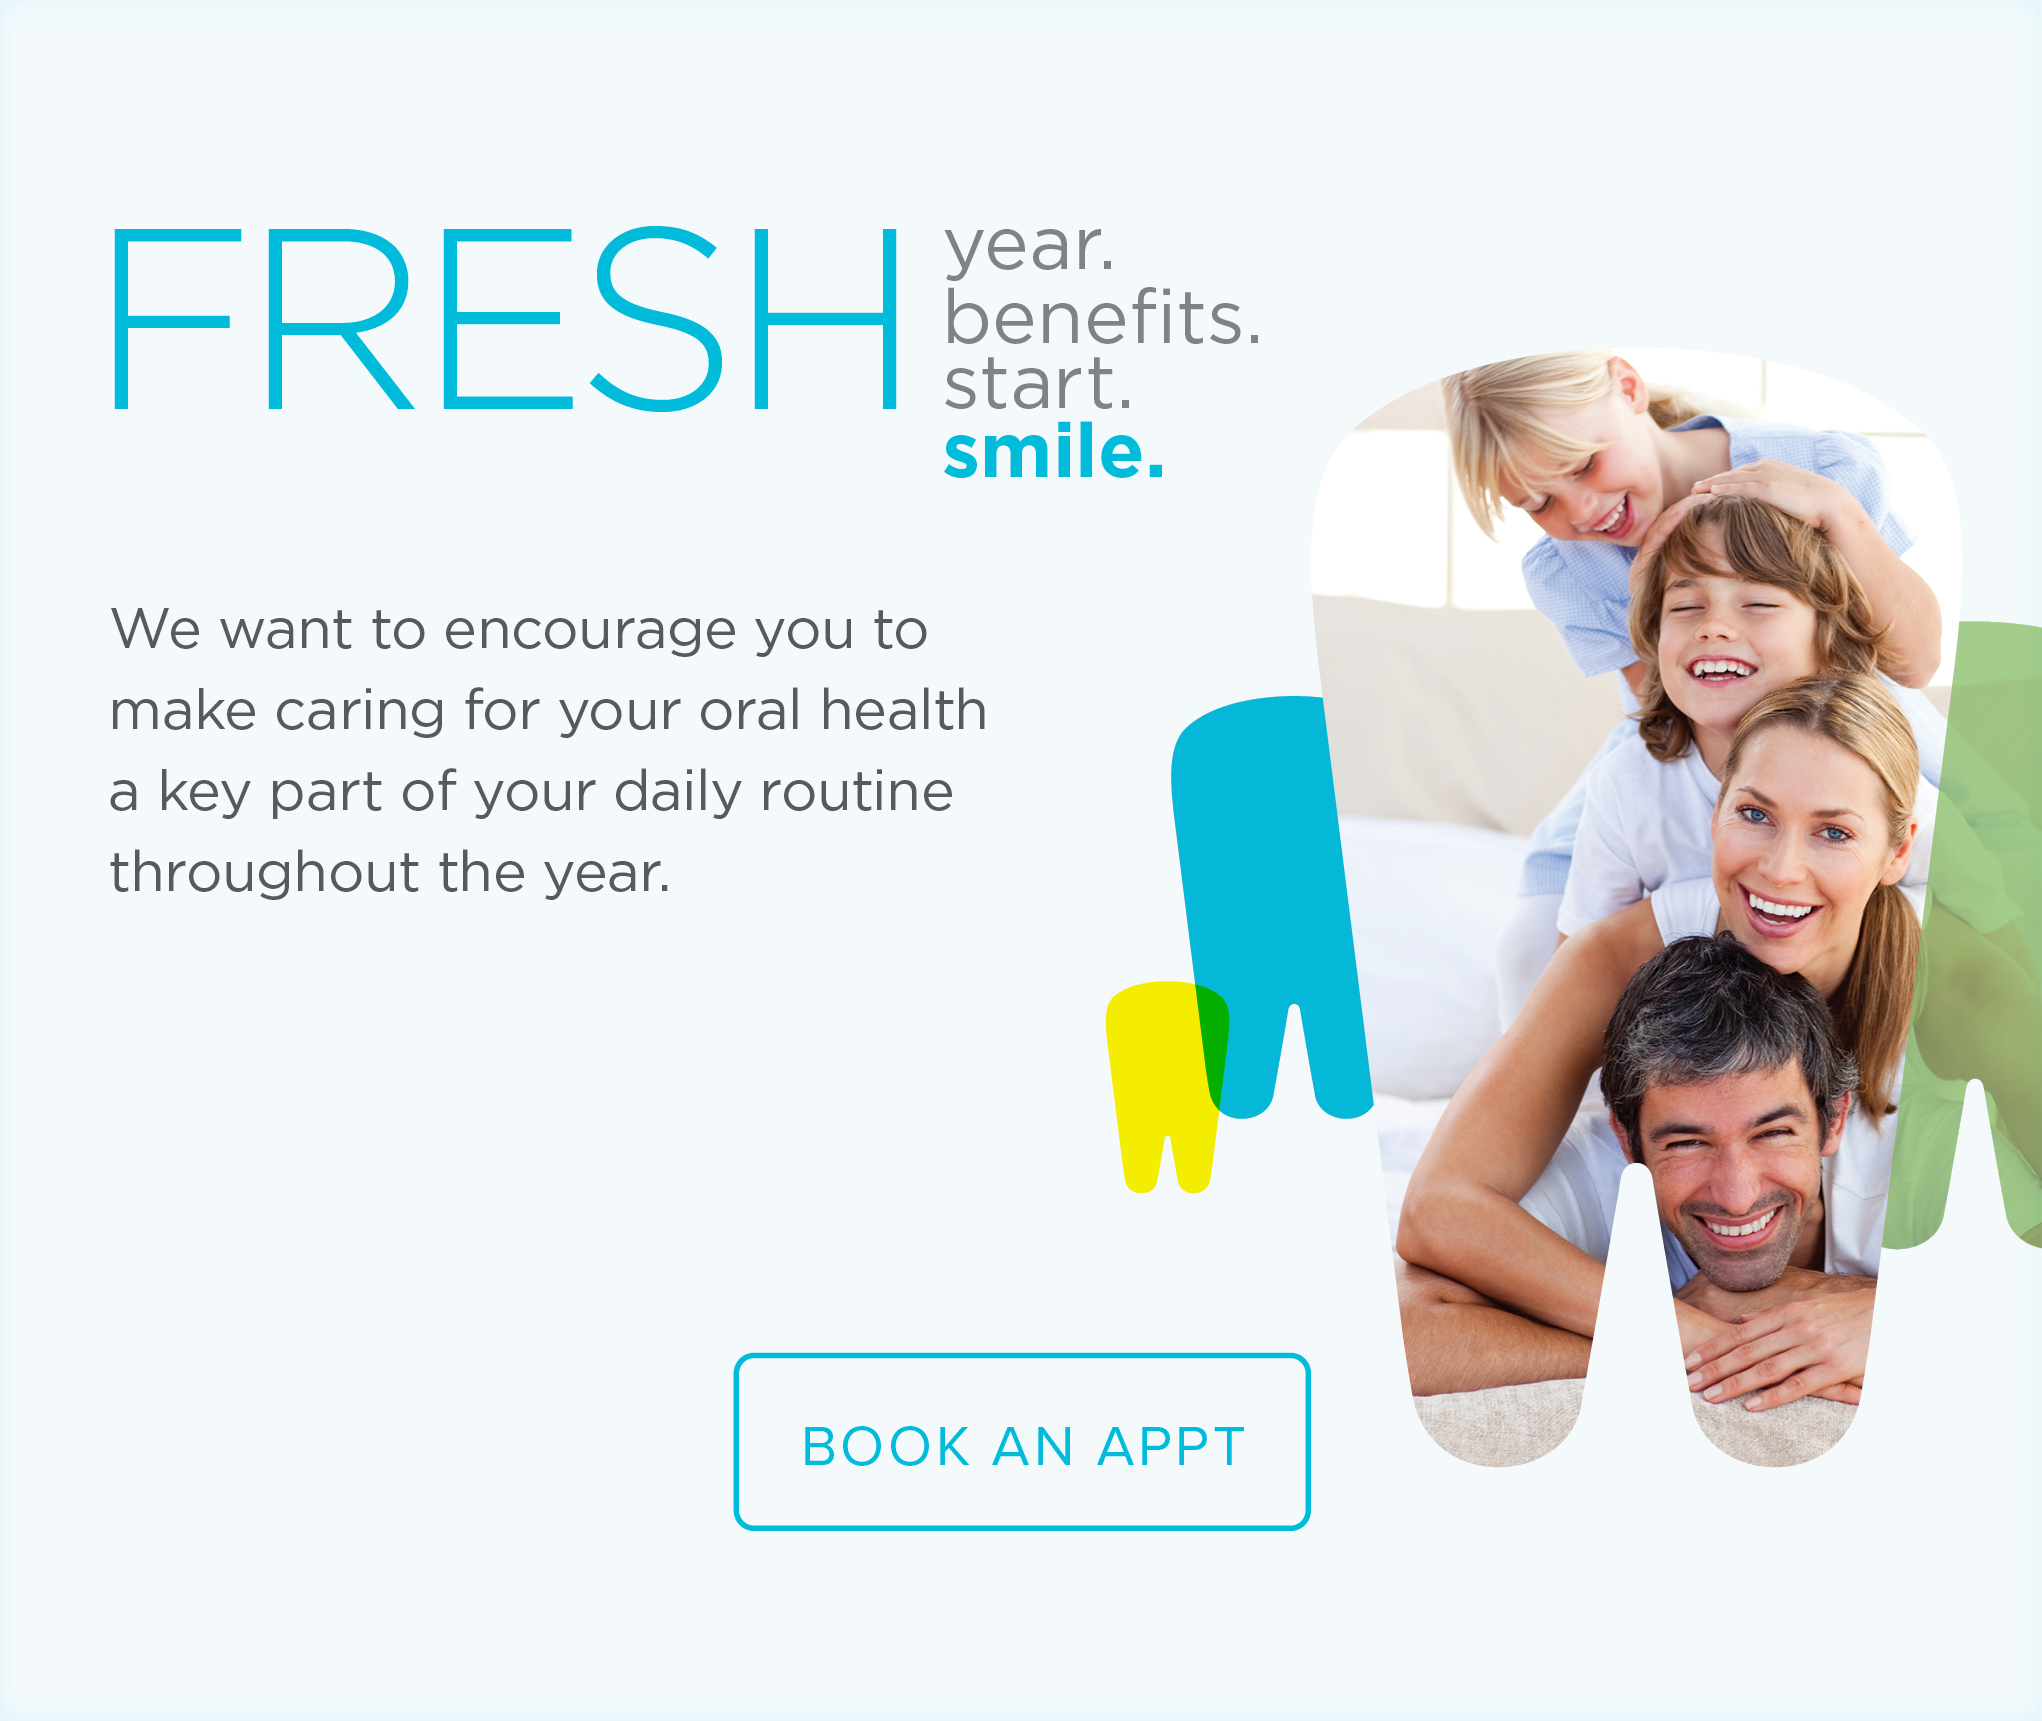 Chino Smiles Dentistry and Orthodontics - Make the Most of Your Benefits